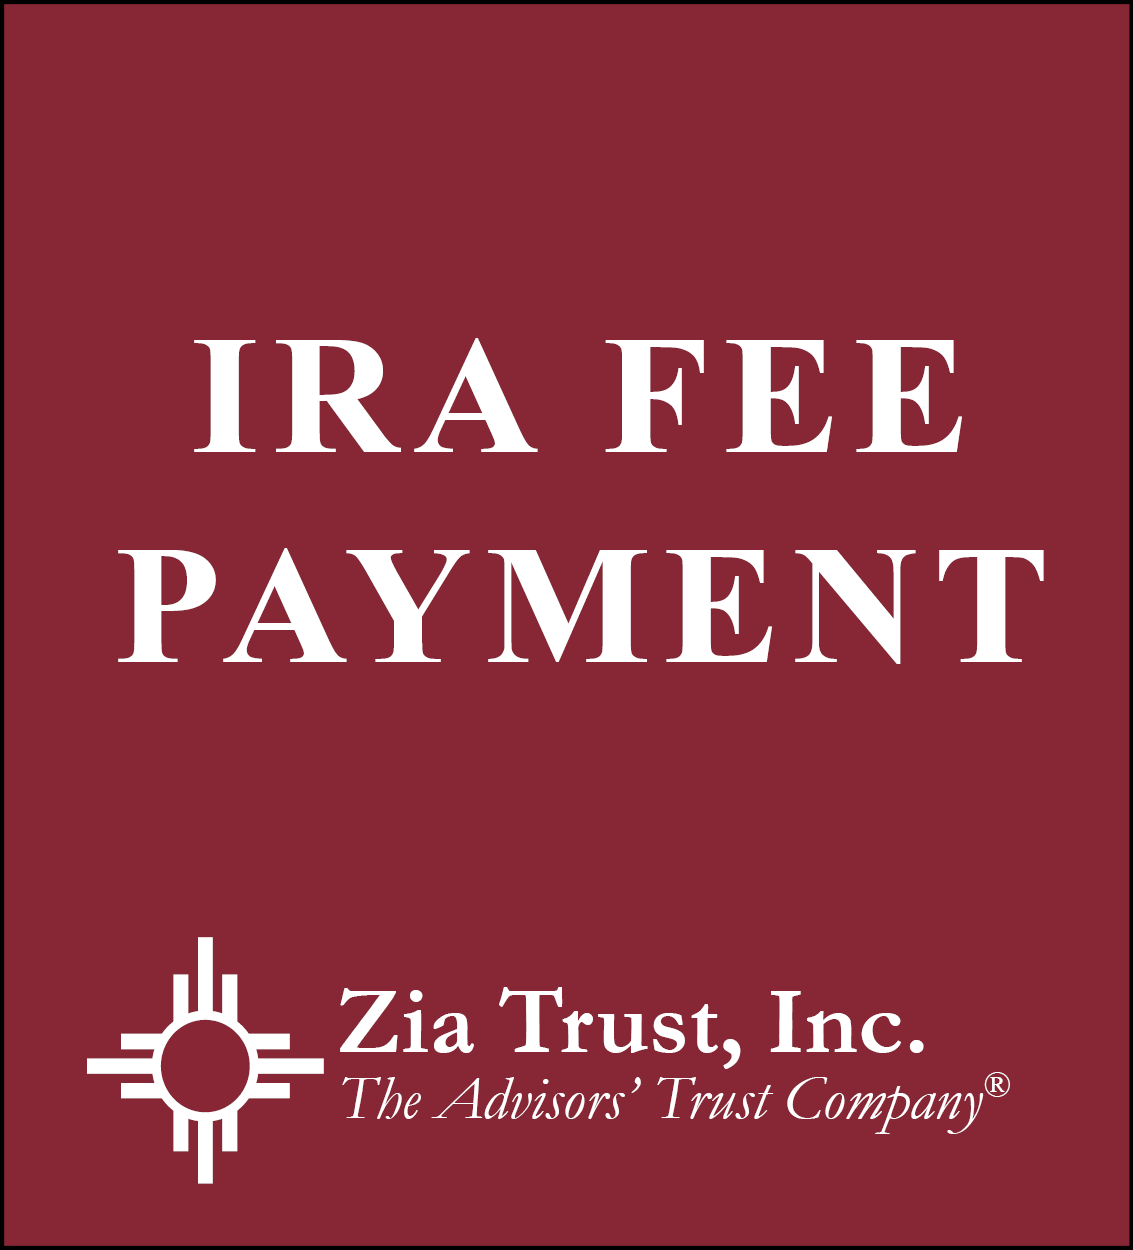 Ira Fee Payment